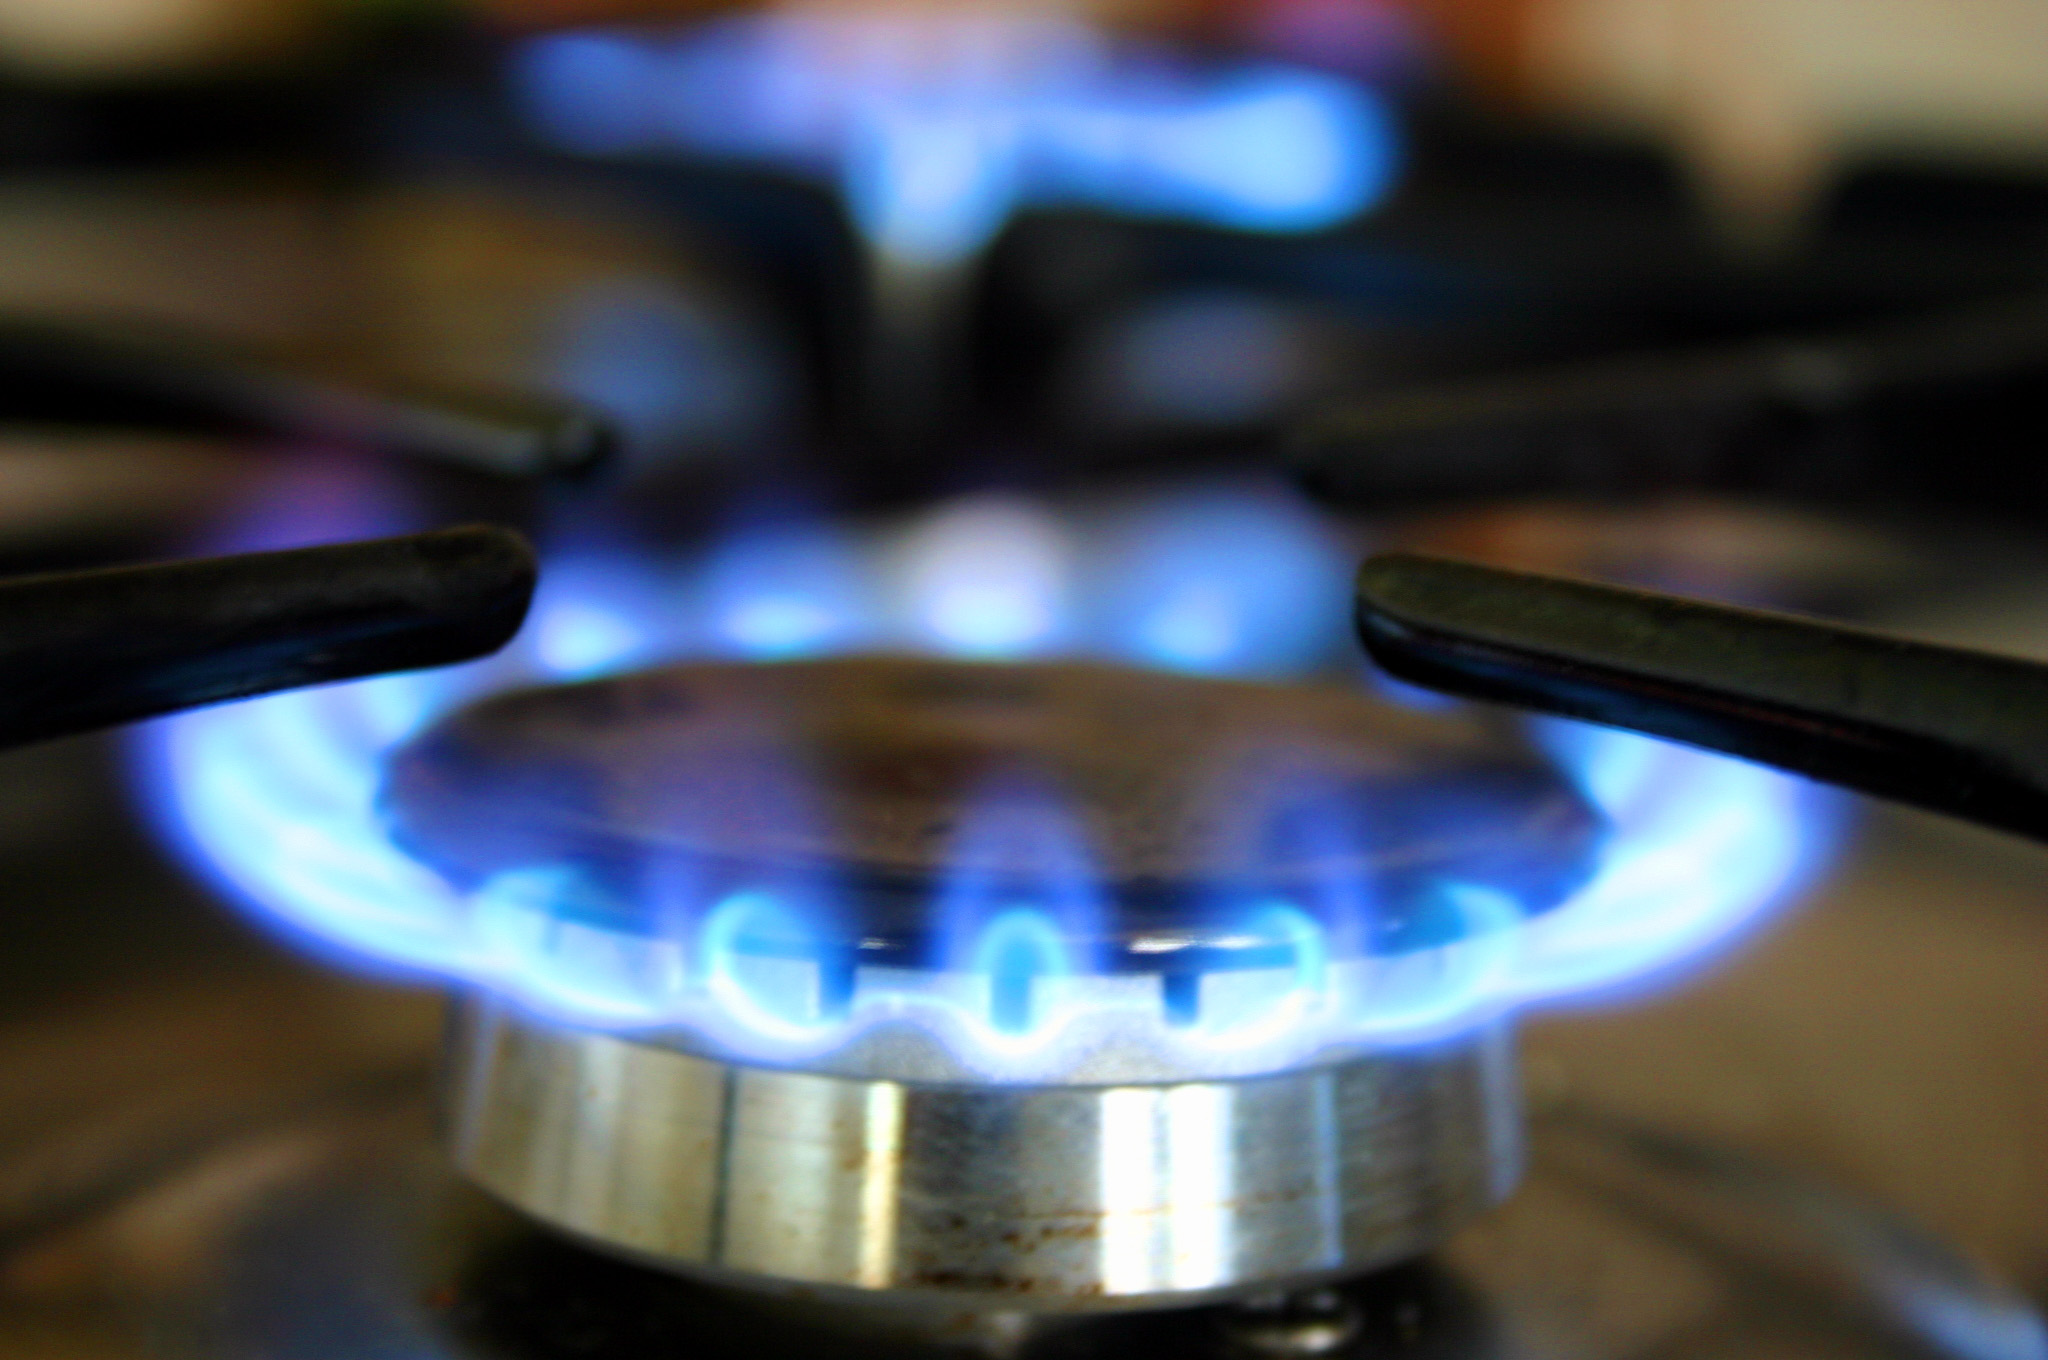 Ofgem says it expects suppliers to double their per household profits